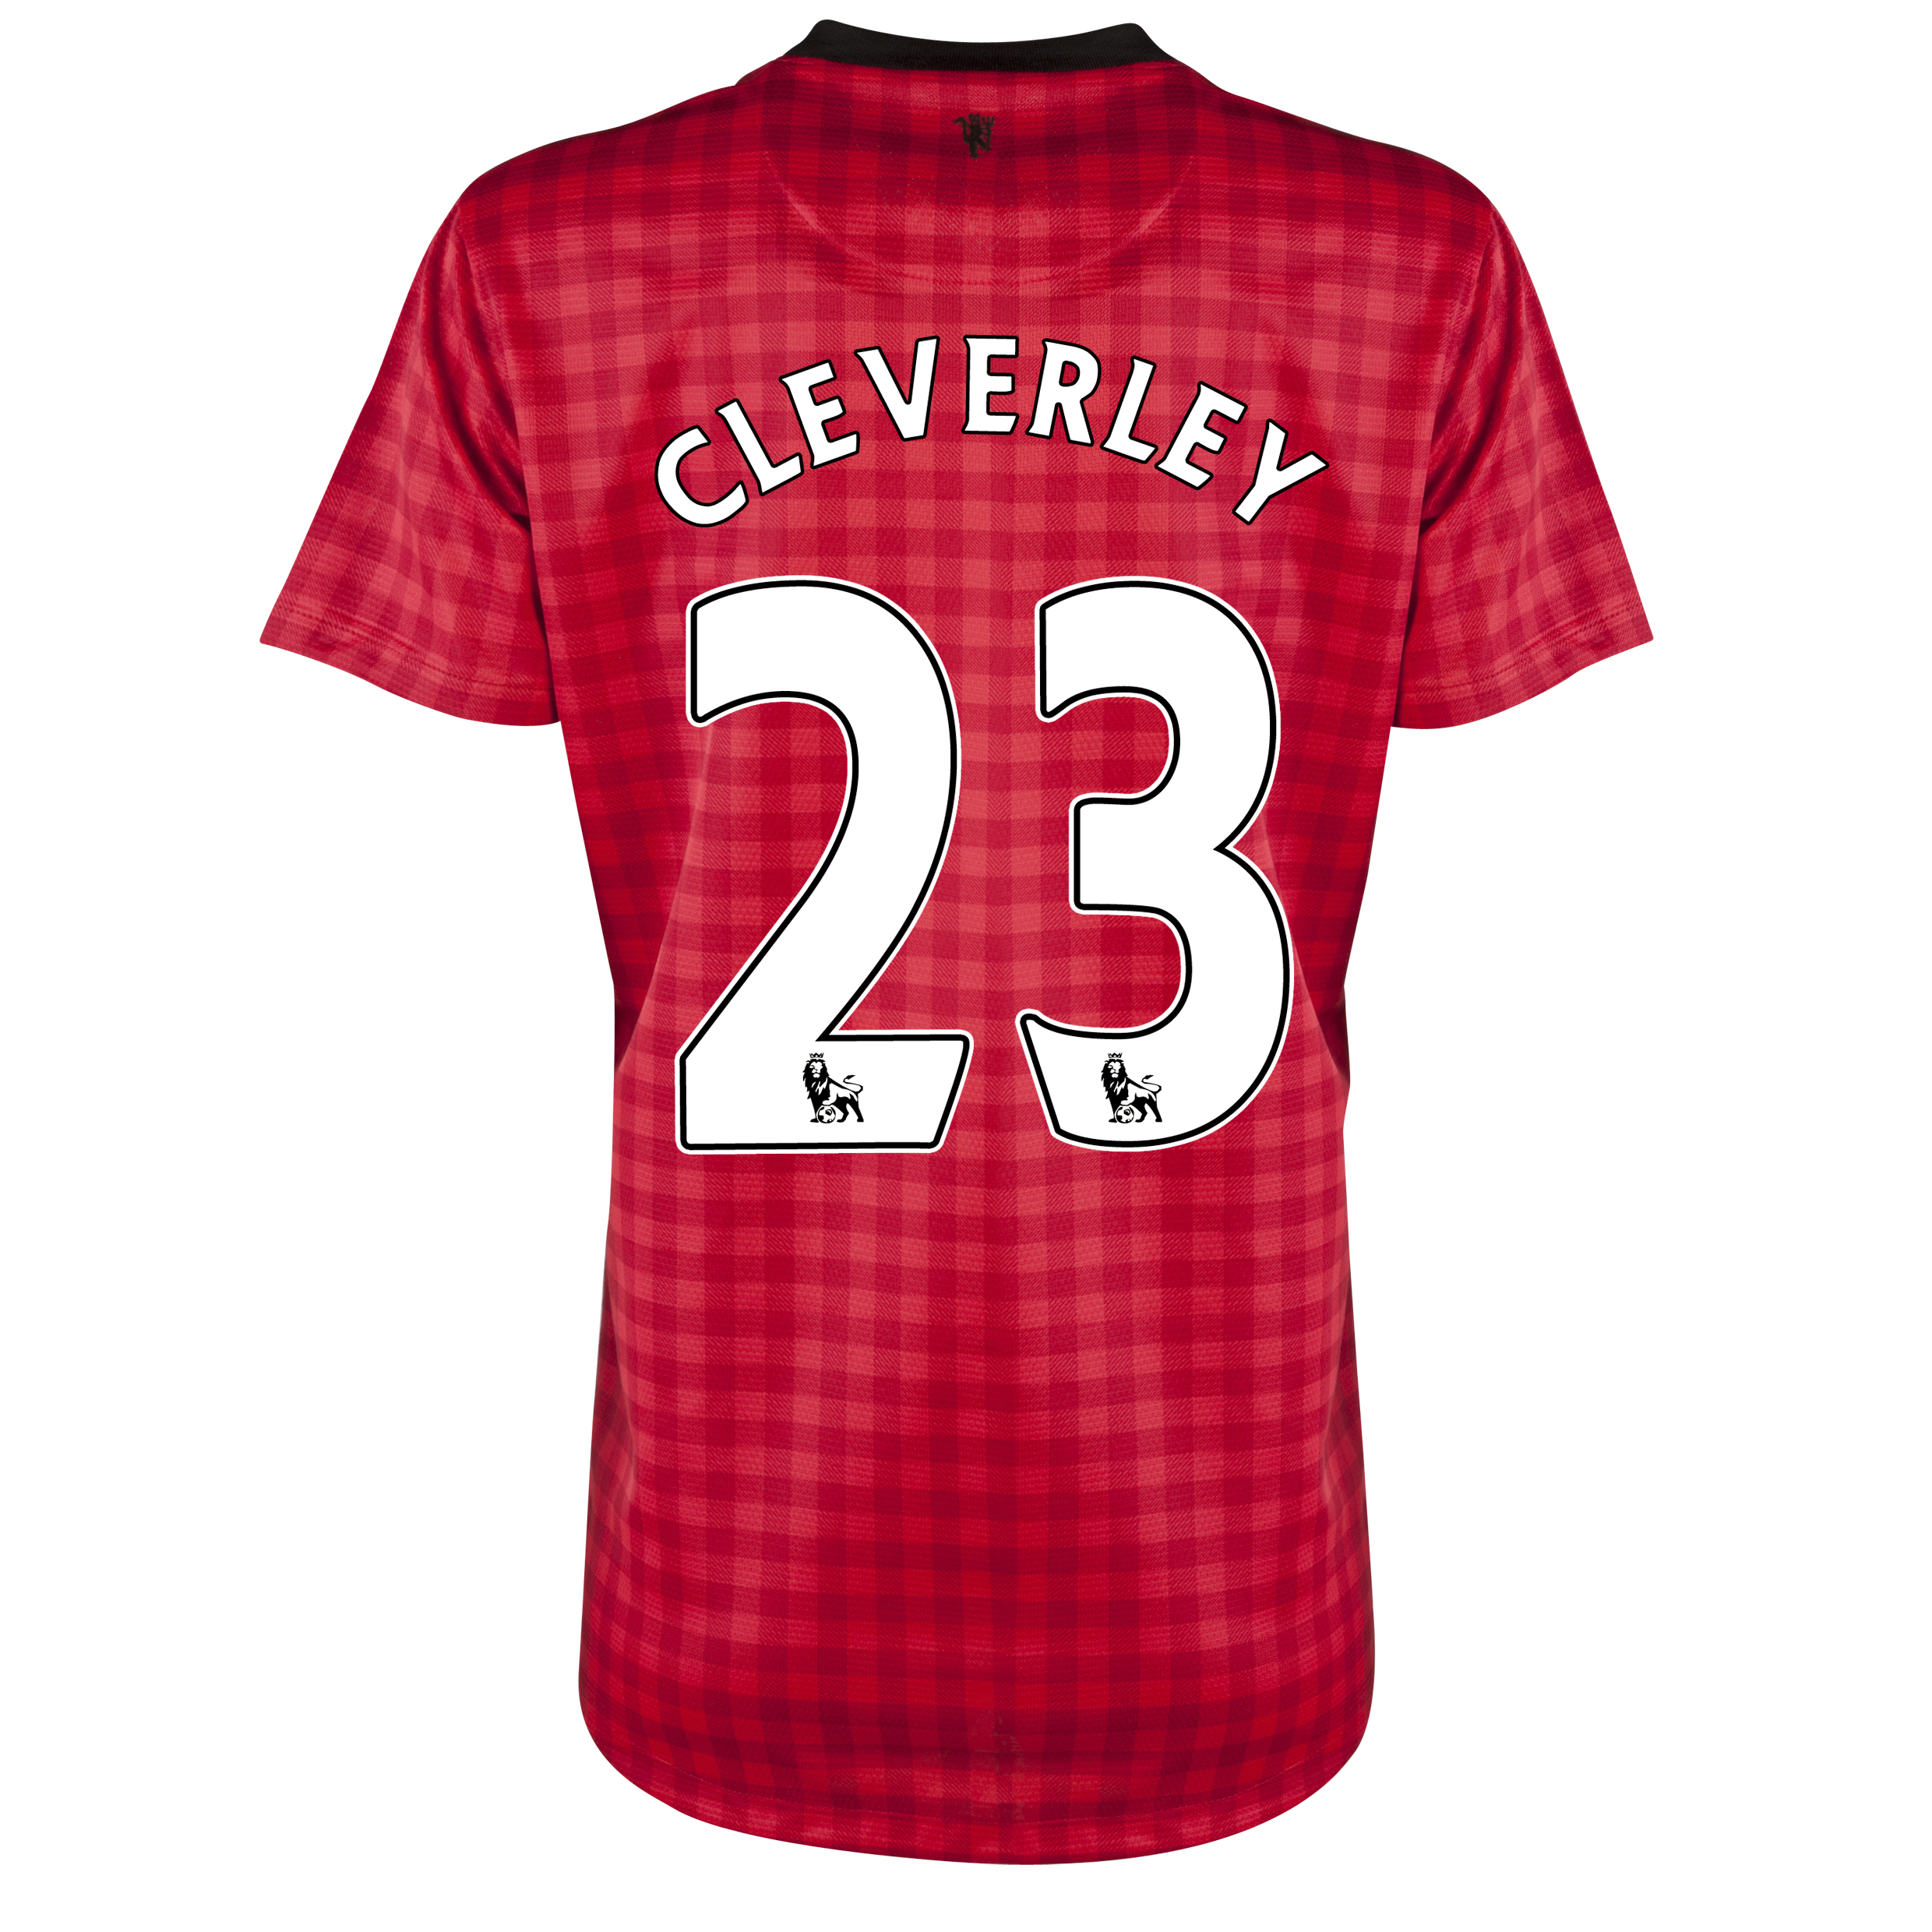 Manchester United Home Shirt 2012/13 - Womens with Cleverley 23 printing